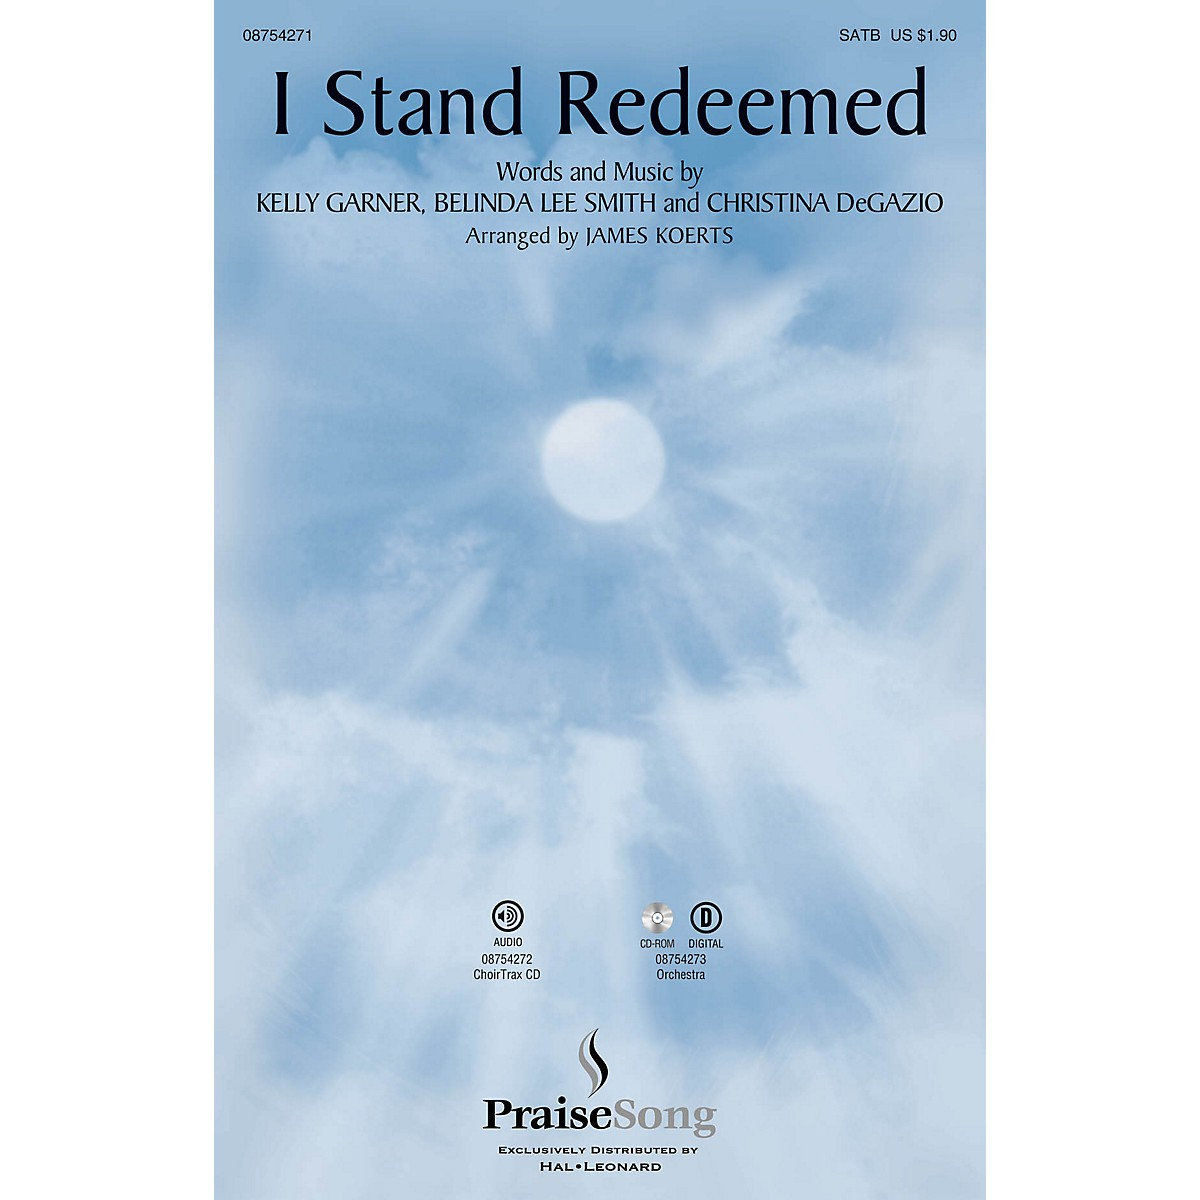 PraiseSong I Stand Redeemed CHOIRTRAX CD by Legacy Five Arranged by James Koerts